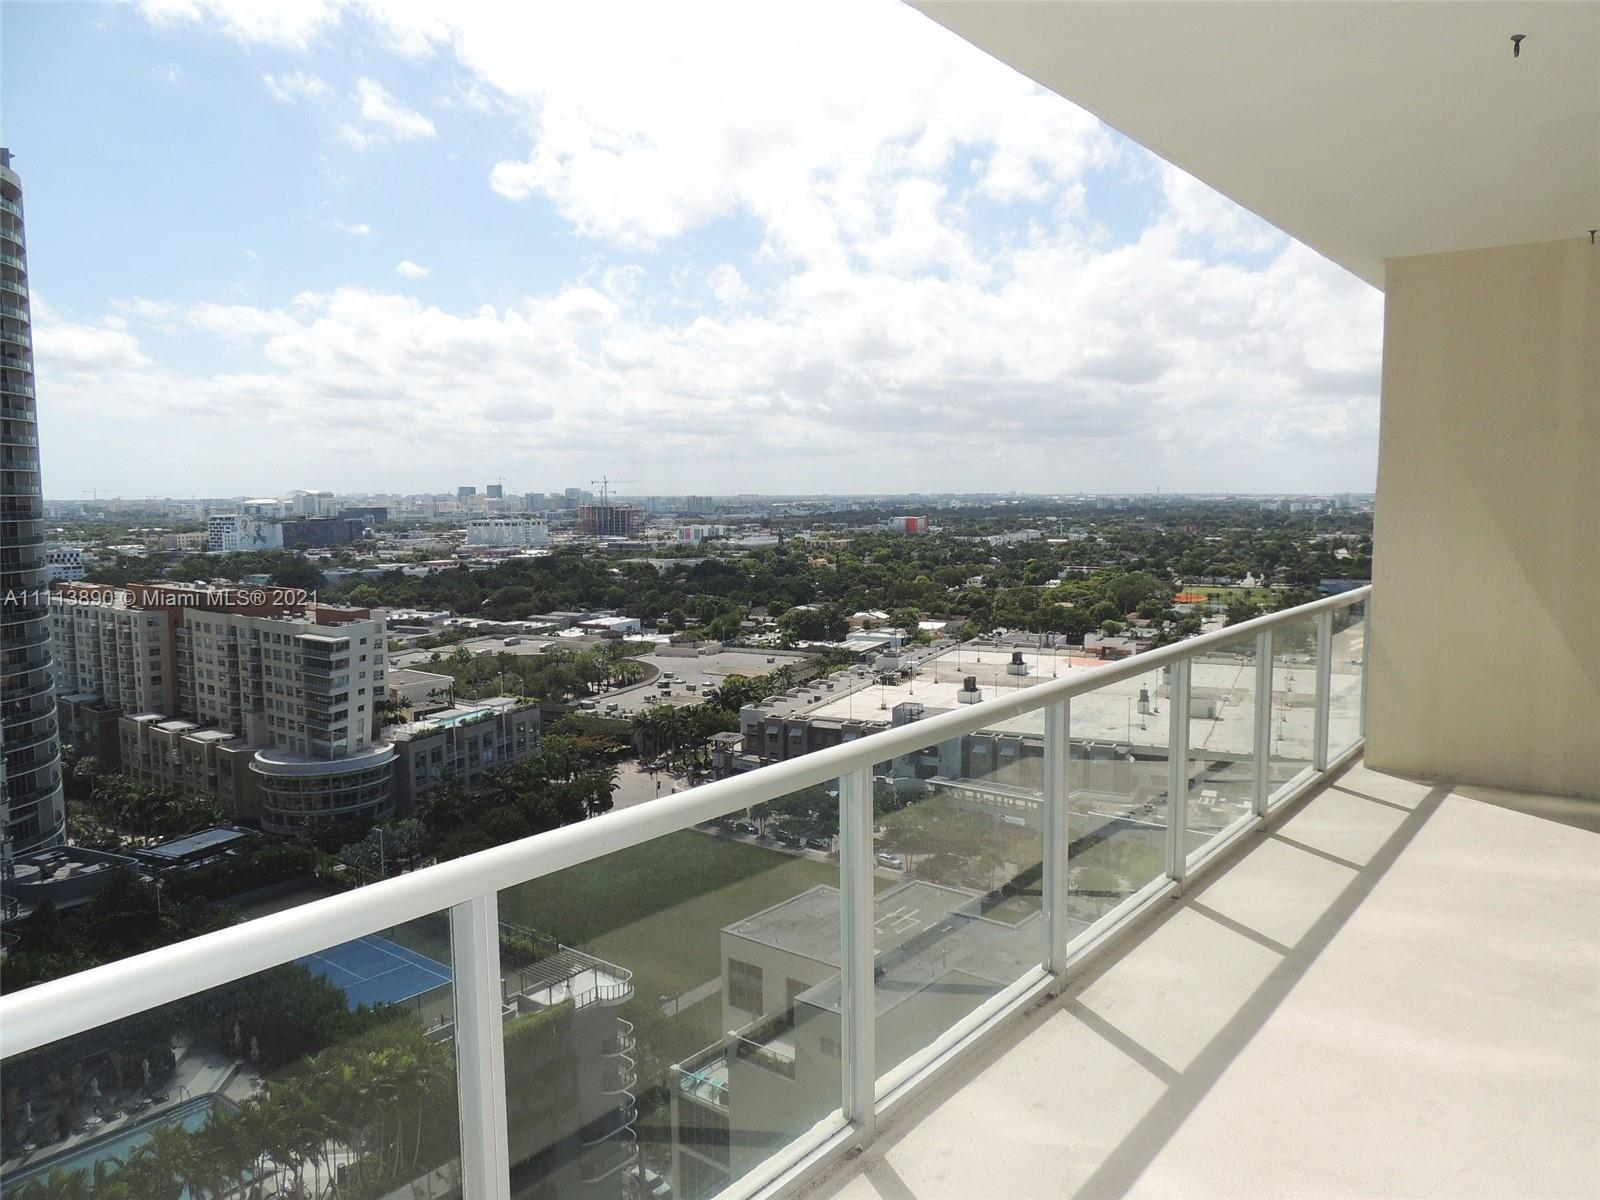 MIAMI LIVING AT IT'S FINEST!! SPECTACULAR VIEWS FROM THIS 20th FLOOR 1 BED / 1 BATH UNIT RIGHT IN TH